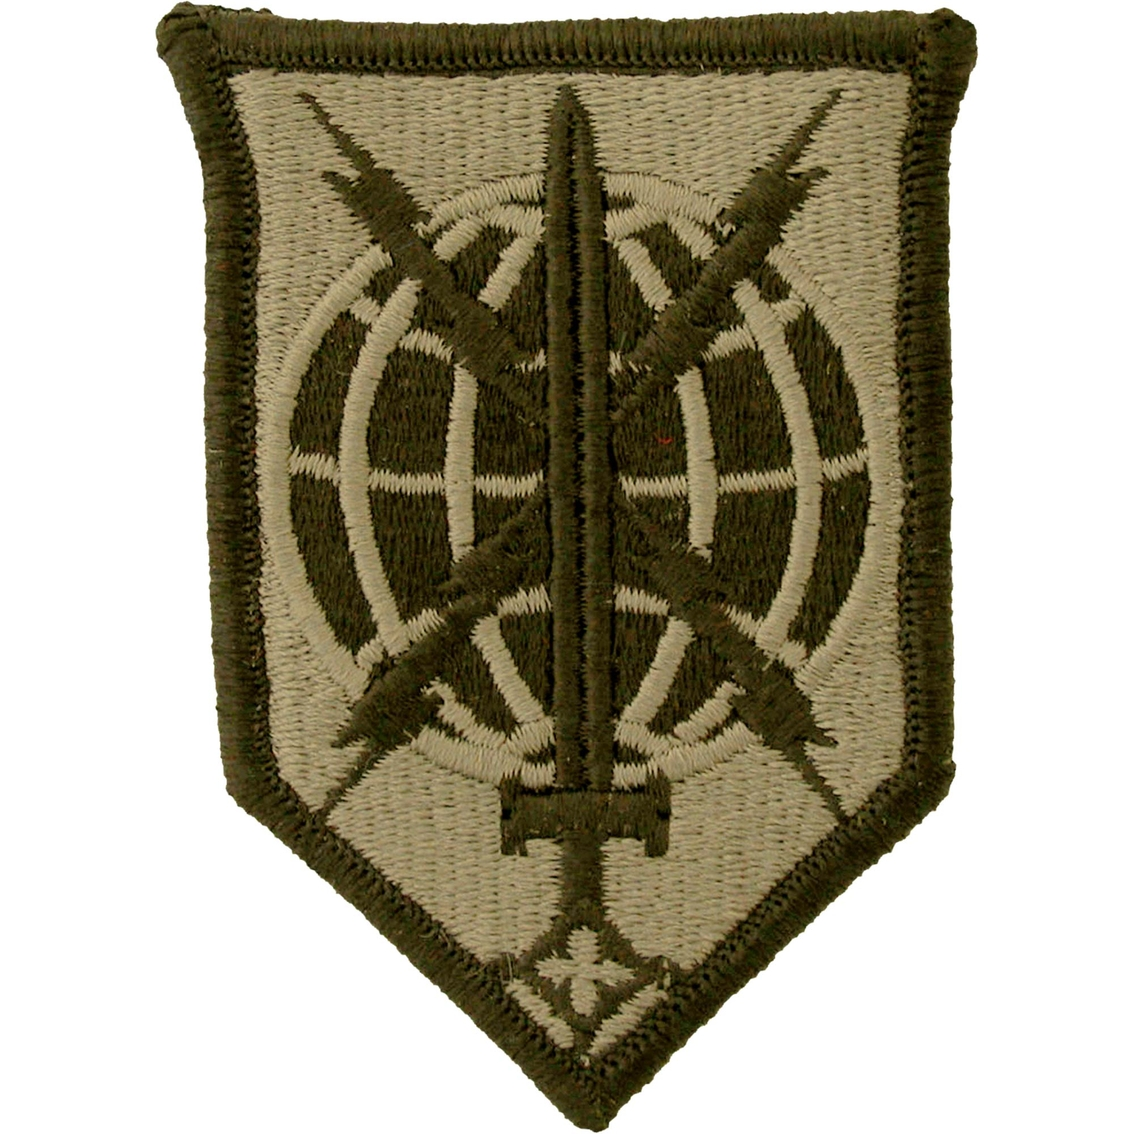 Army Unit Patch Military Intelligence Readiness Command (ocp)   Ocp ...